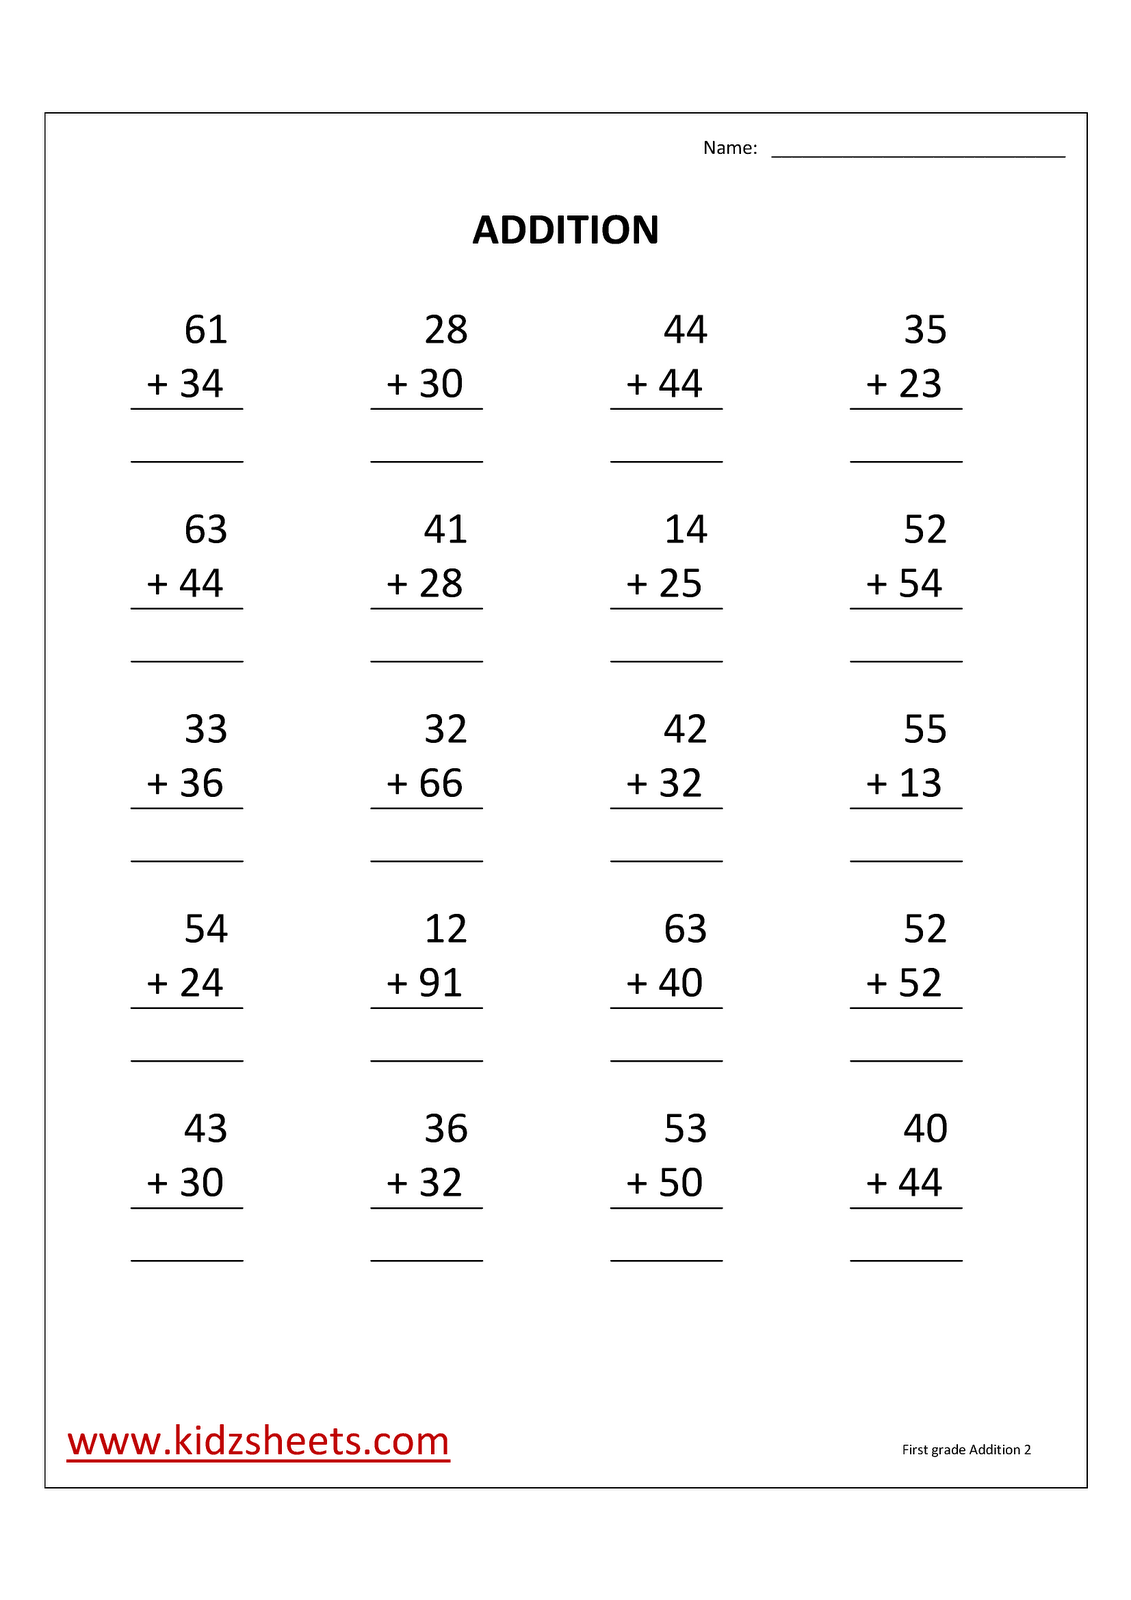 Year 2 Addition Worksheets addition worksheets addition – Addition Worksheet Grade 2